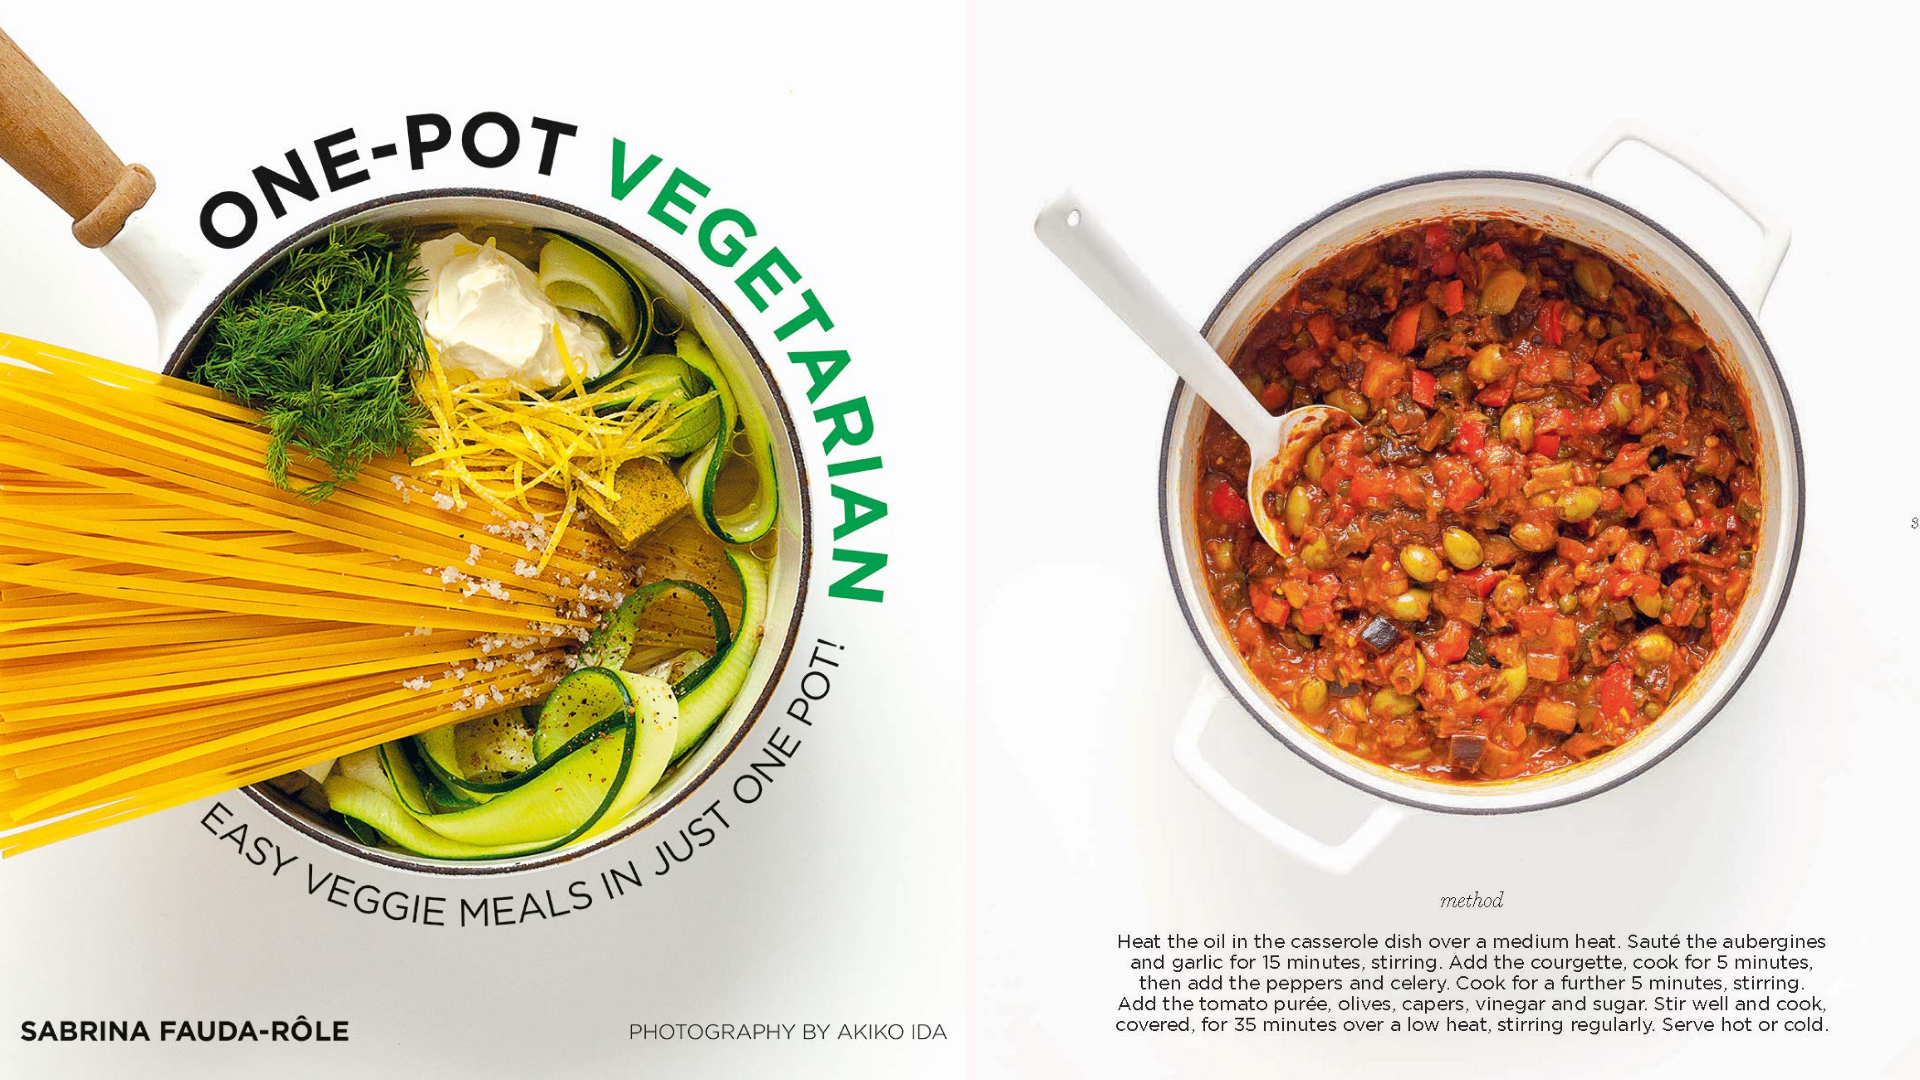 """The cover of the """"One-Pot Vegetarian"""" and a pot full of beans and veggies."""